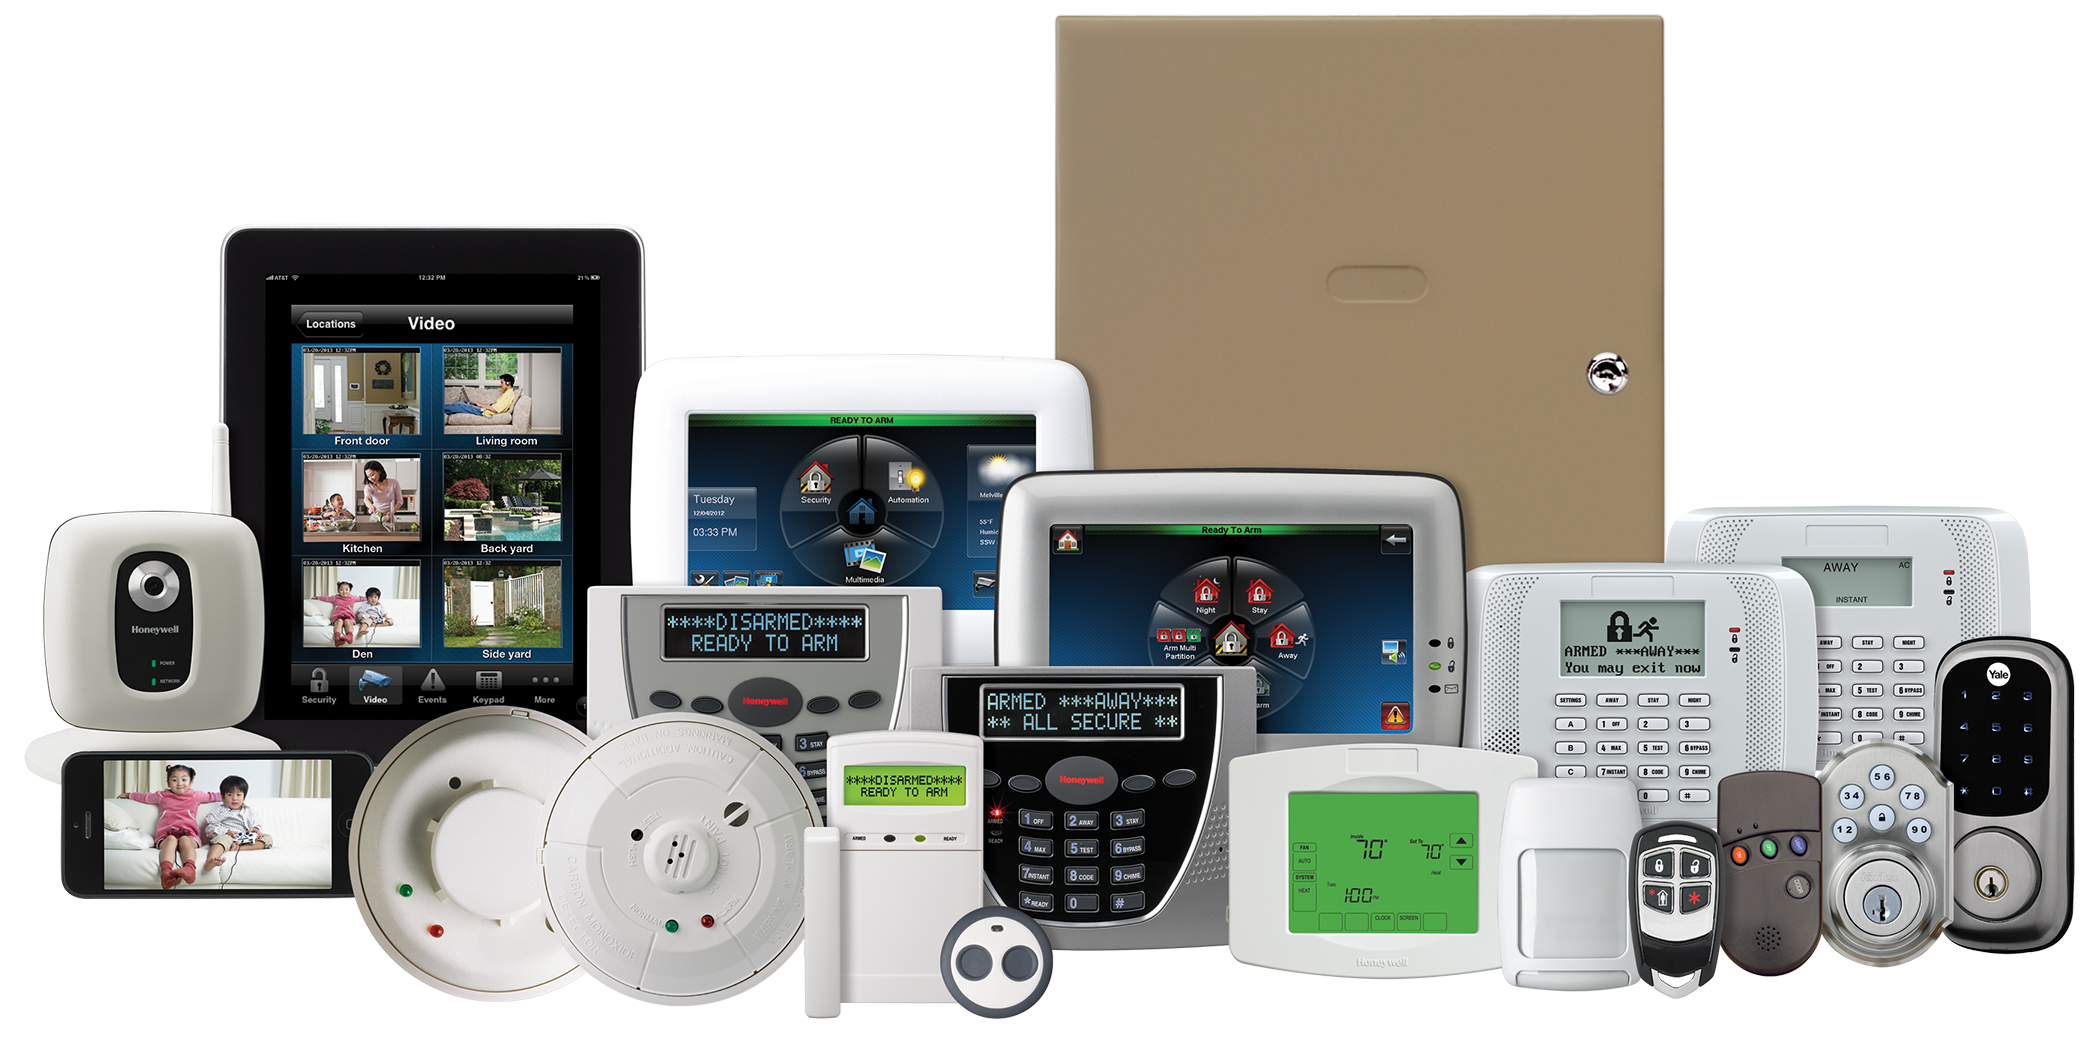 The Honeywell Security Vista Series line of equipment.